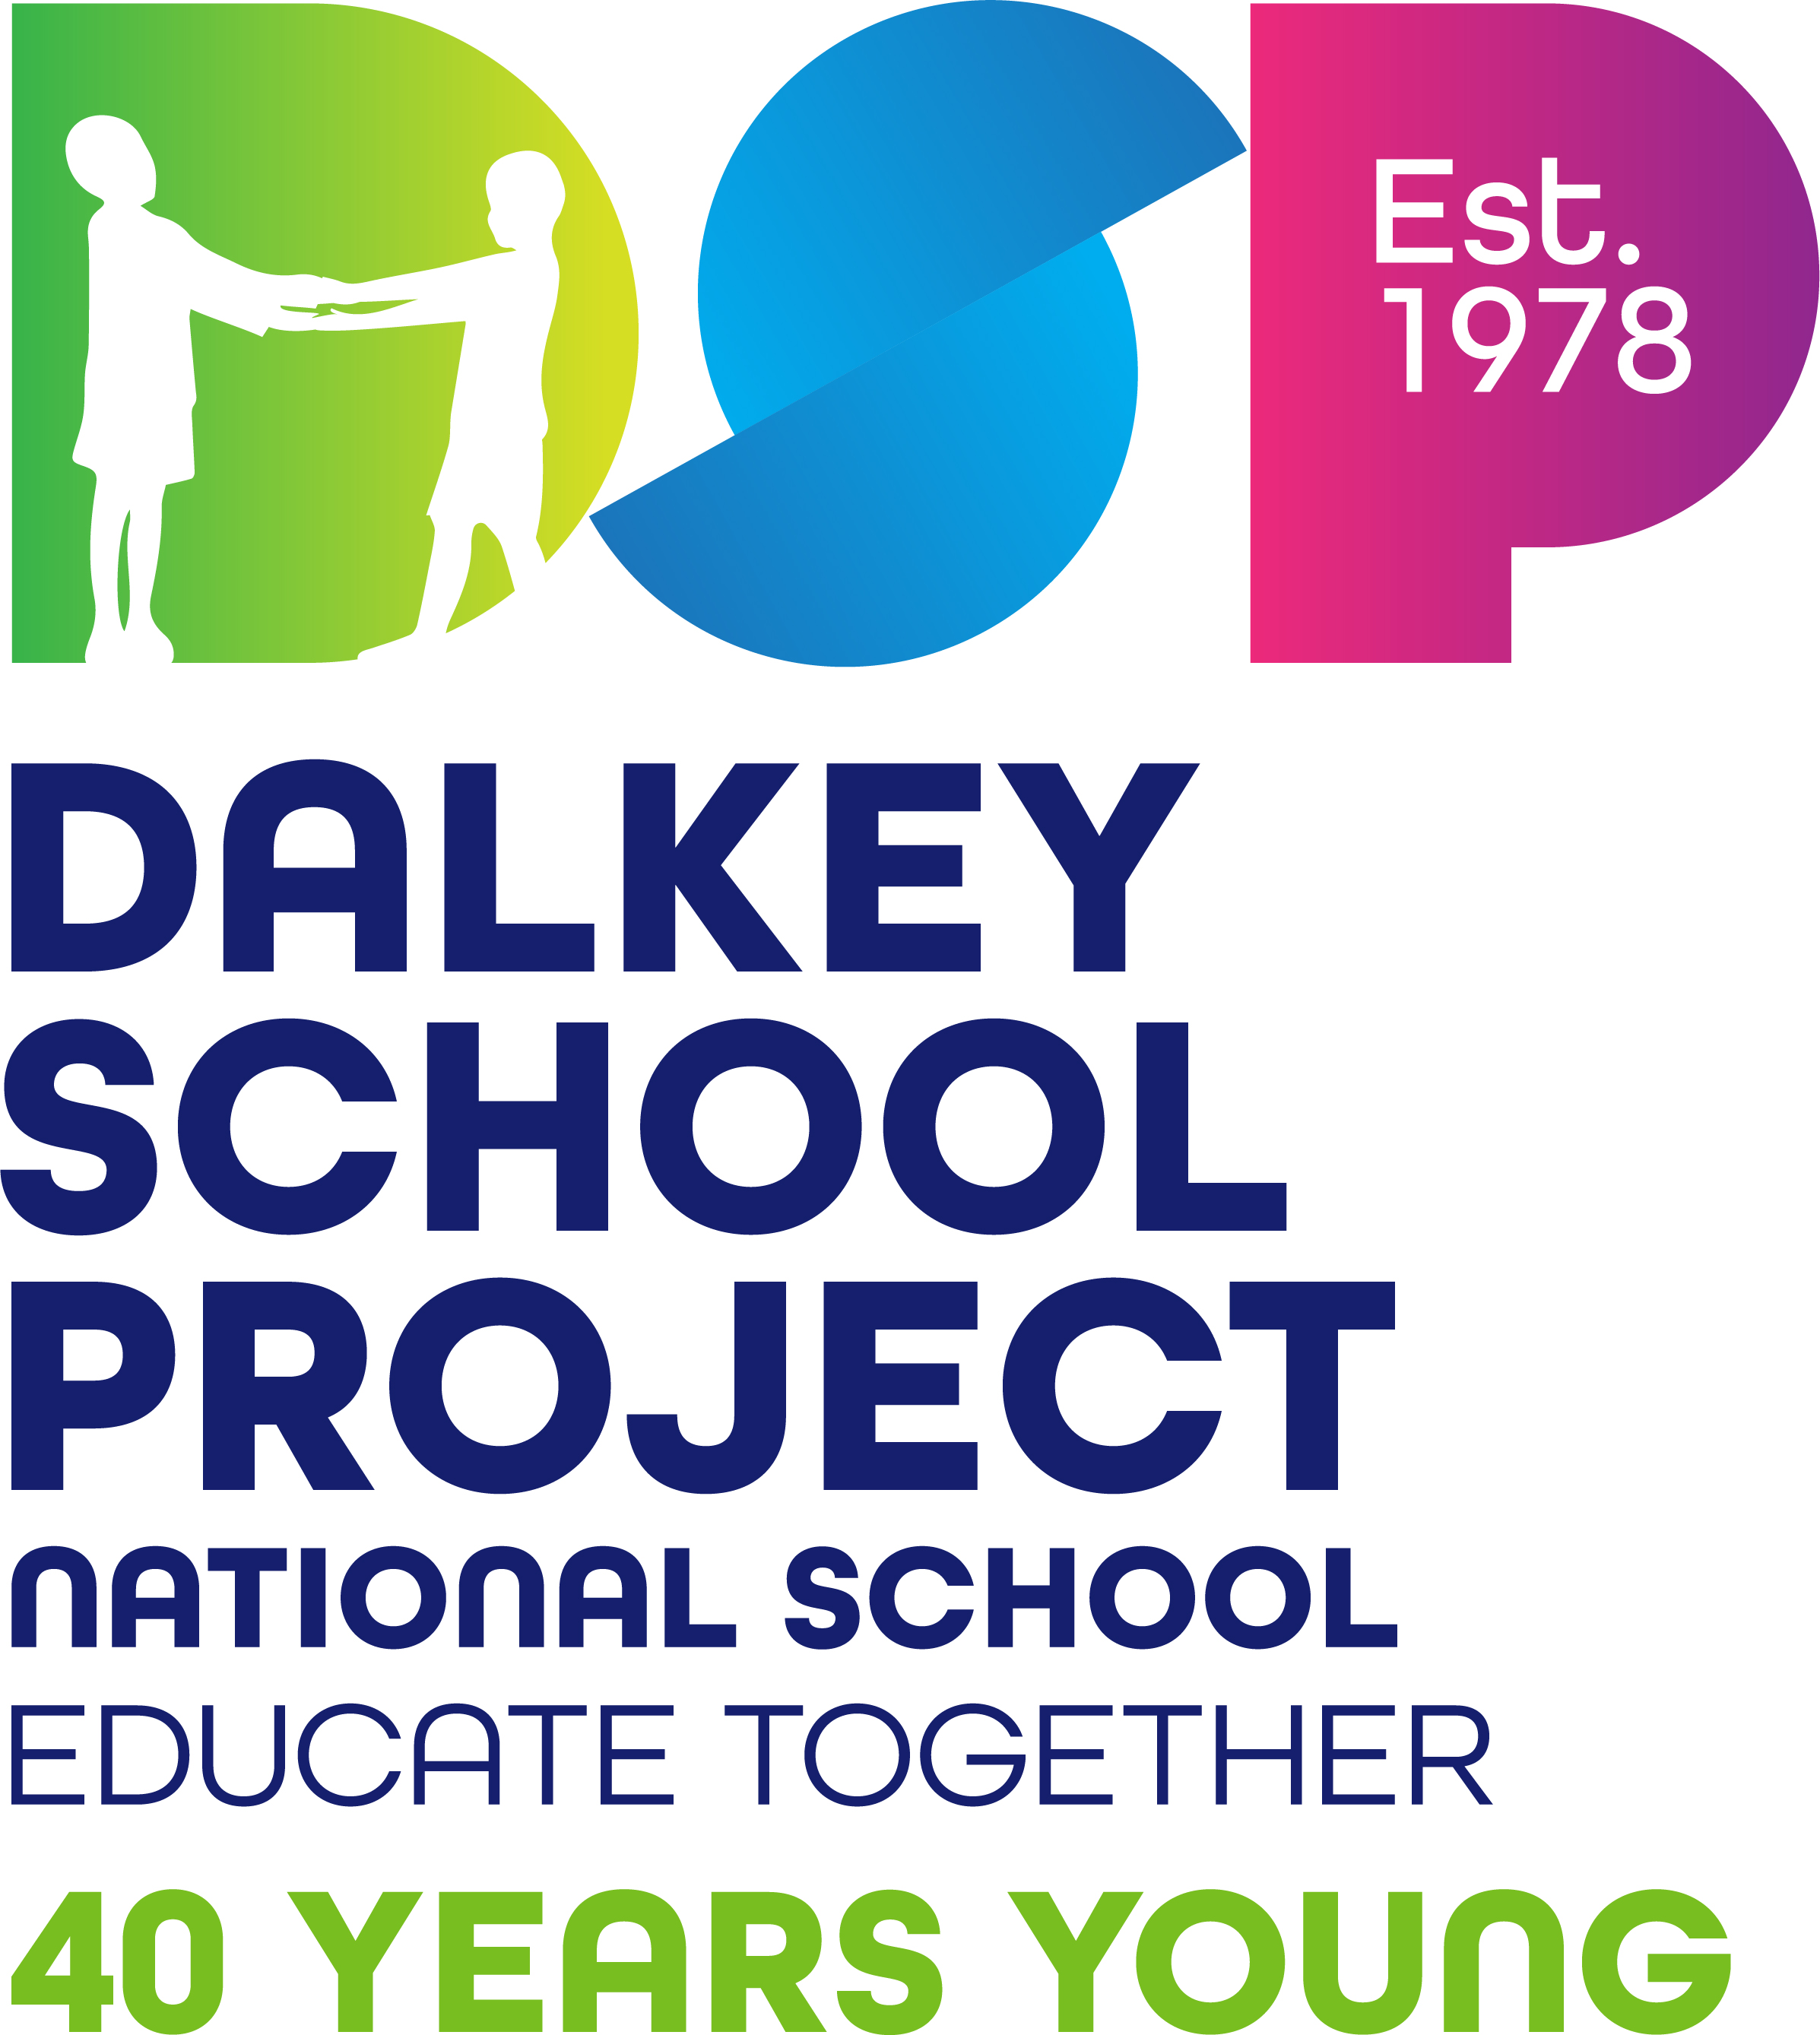 Dalkey School Project National School